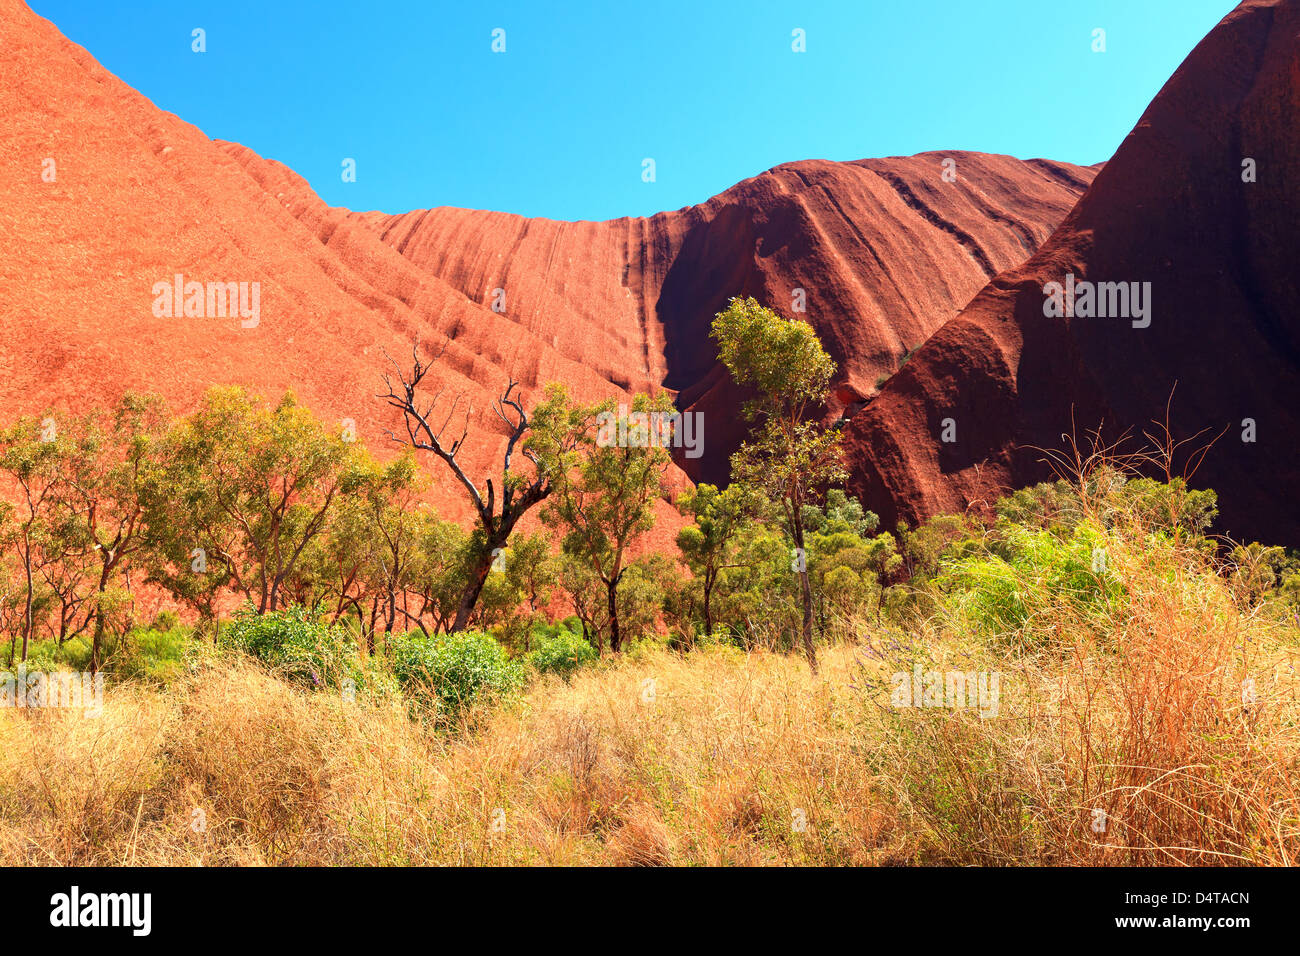 Outback central Australia Northern Territory - Stock Image